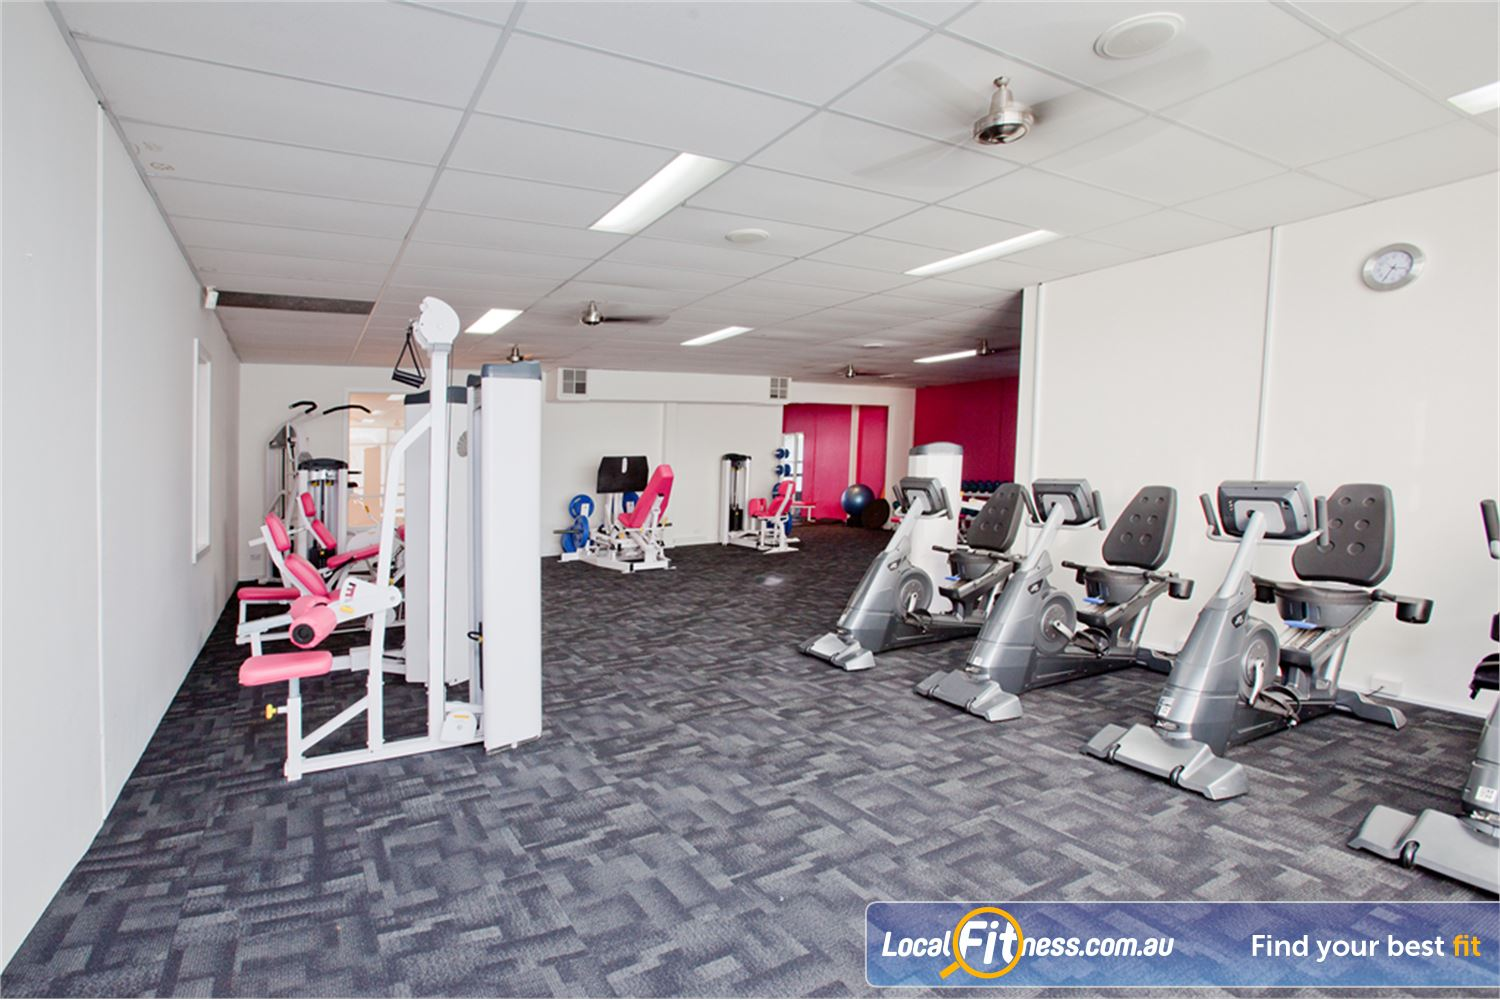 Fernwood Fitness Yarraville Welcome to the new look state of the art Fernwood Yarraville 24 hour gym.